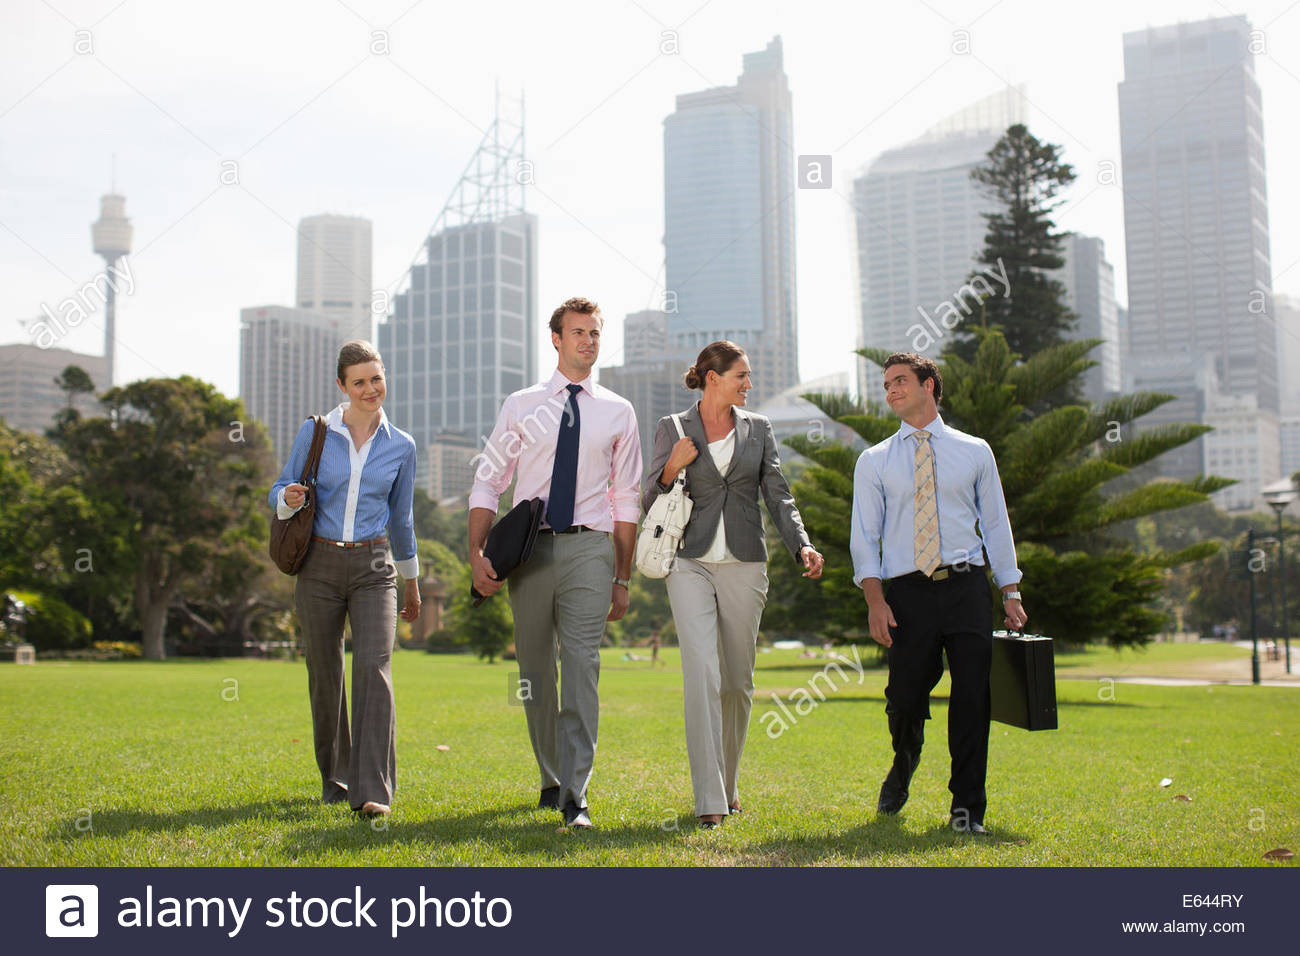 Business people walking together outdoors Stock Photo